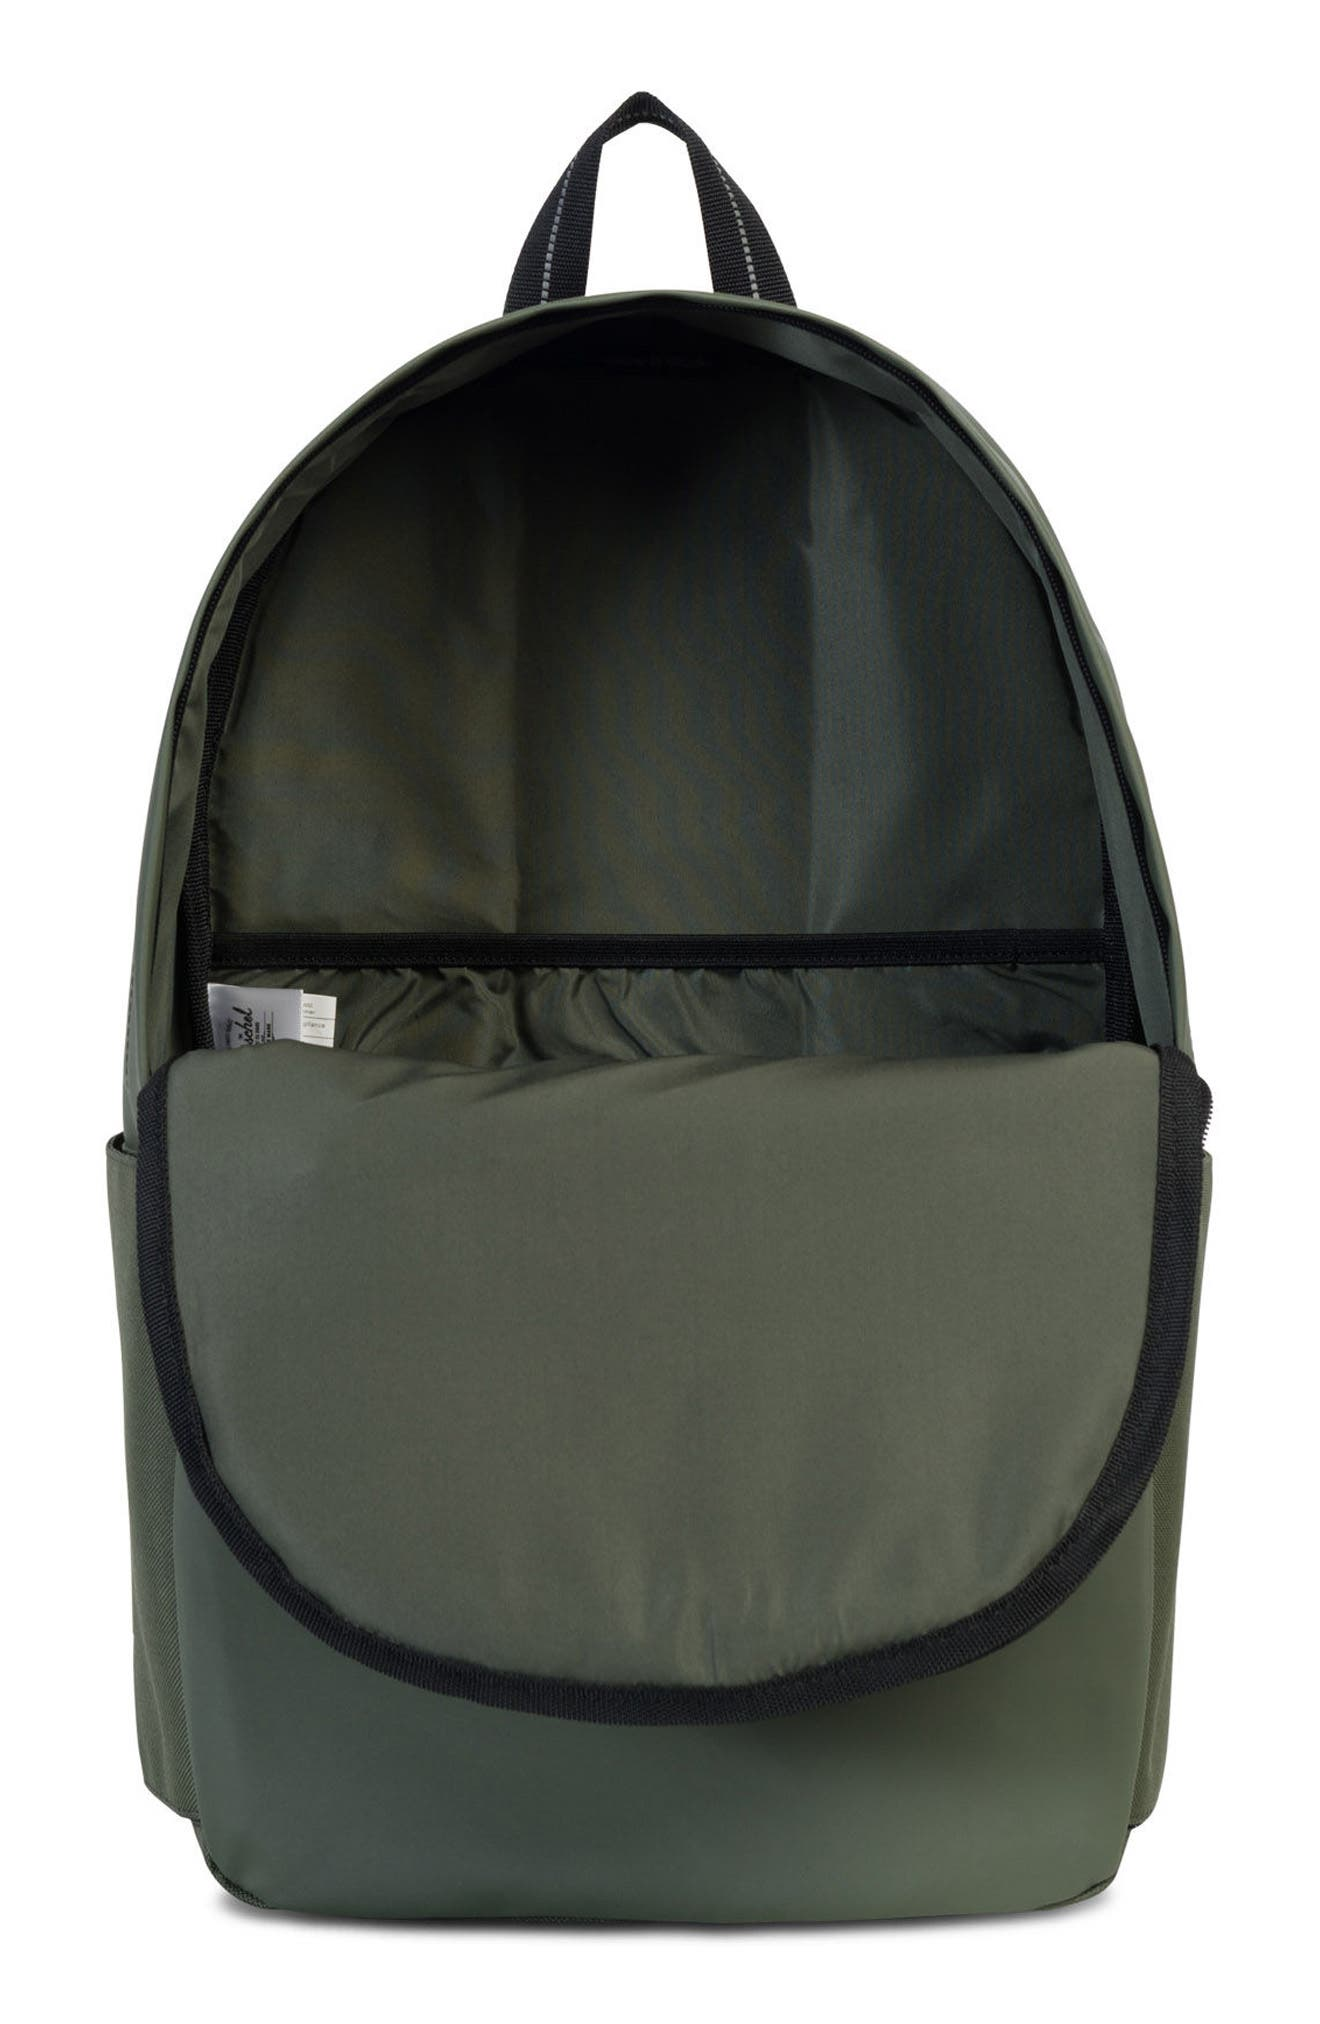 Parker Studio Collection Backpack,                             Alternate thumbnail 14, color,